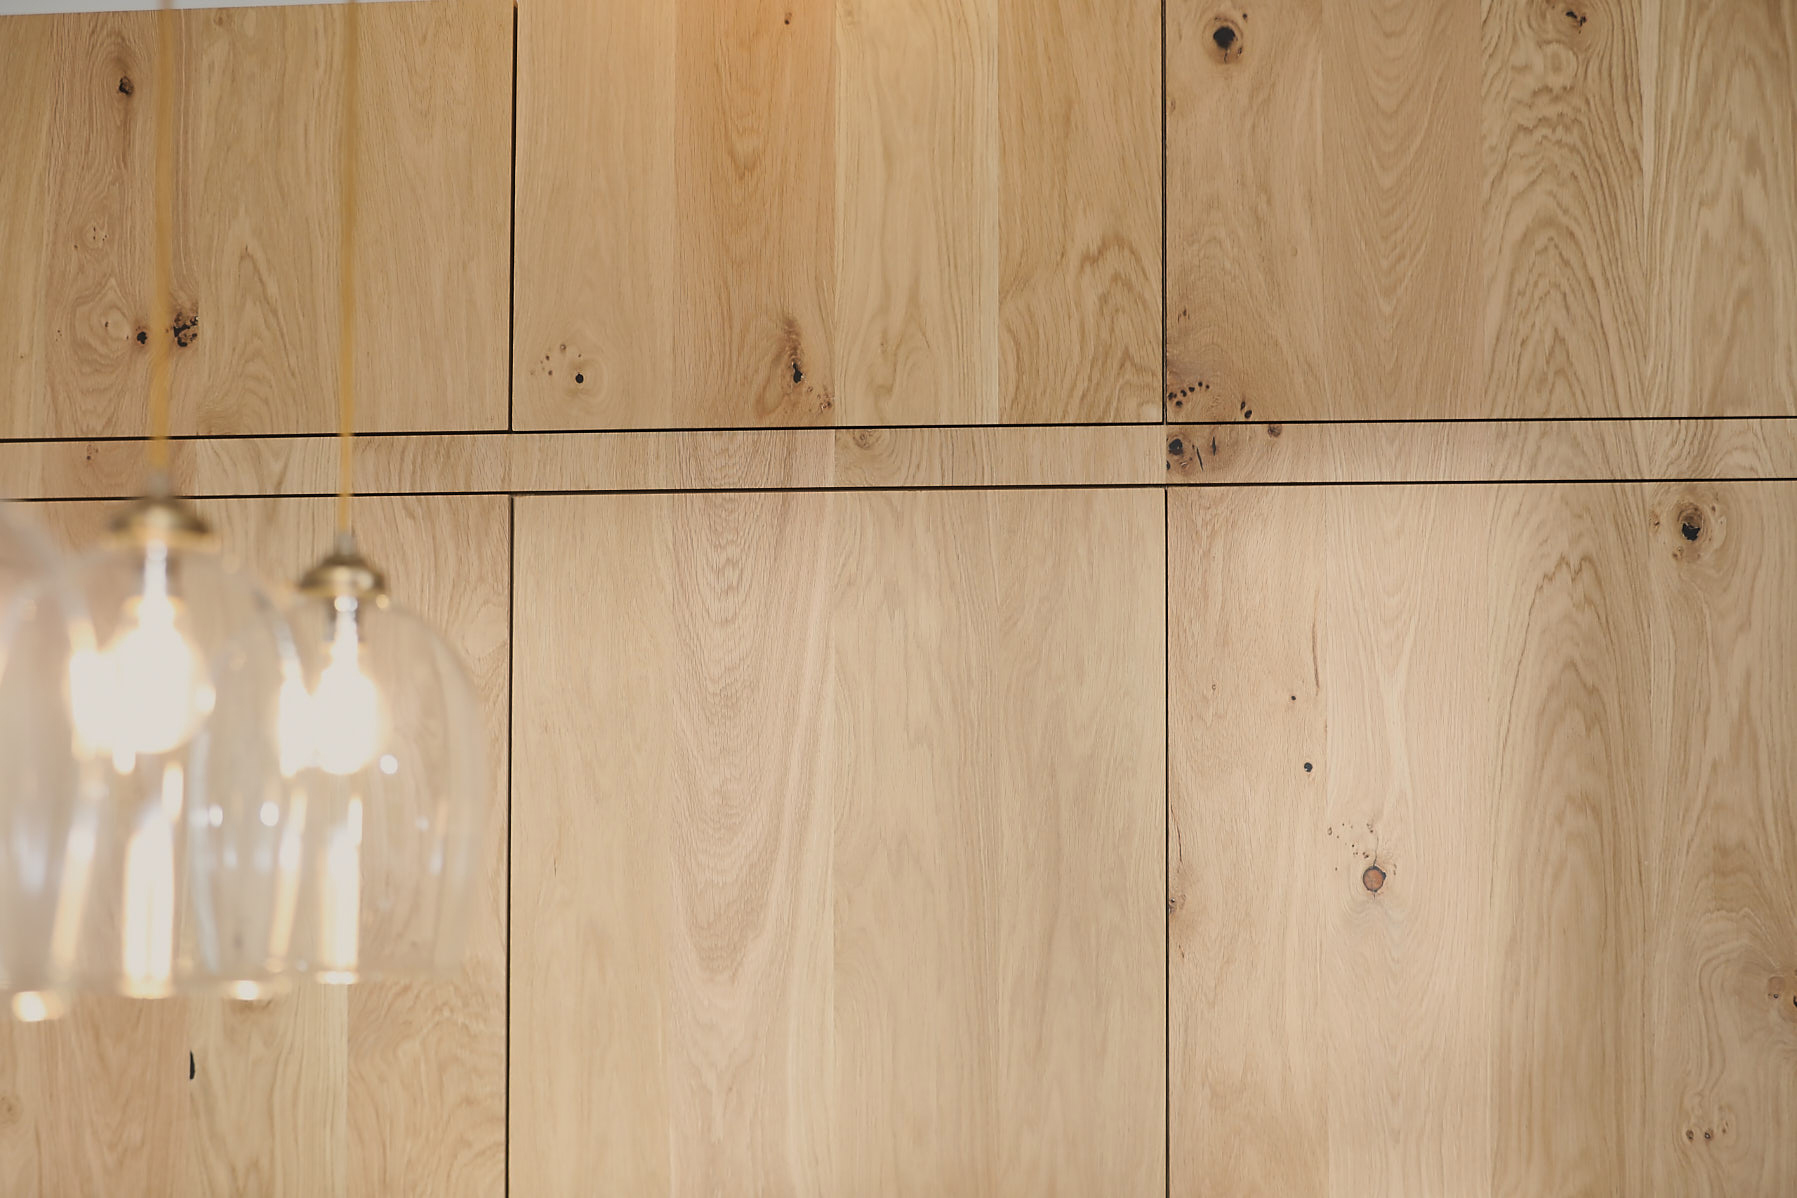 Tall oak cabinets with seamless grain running across doors